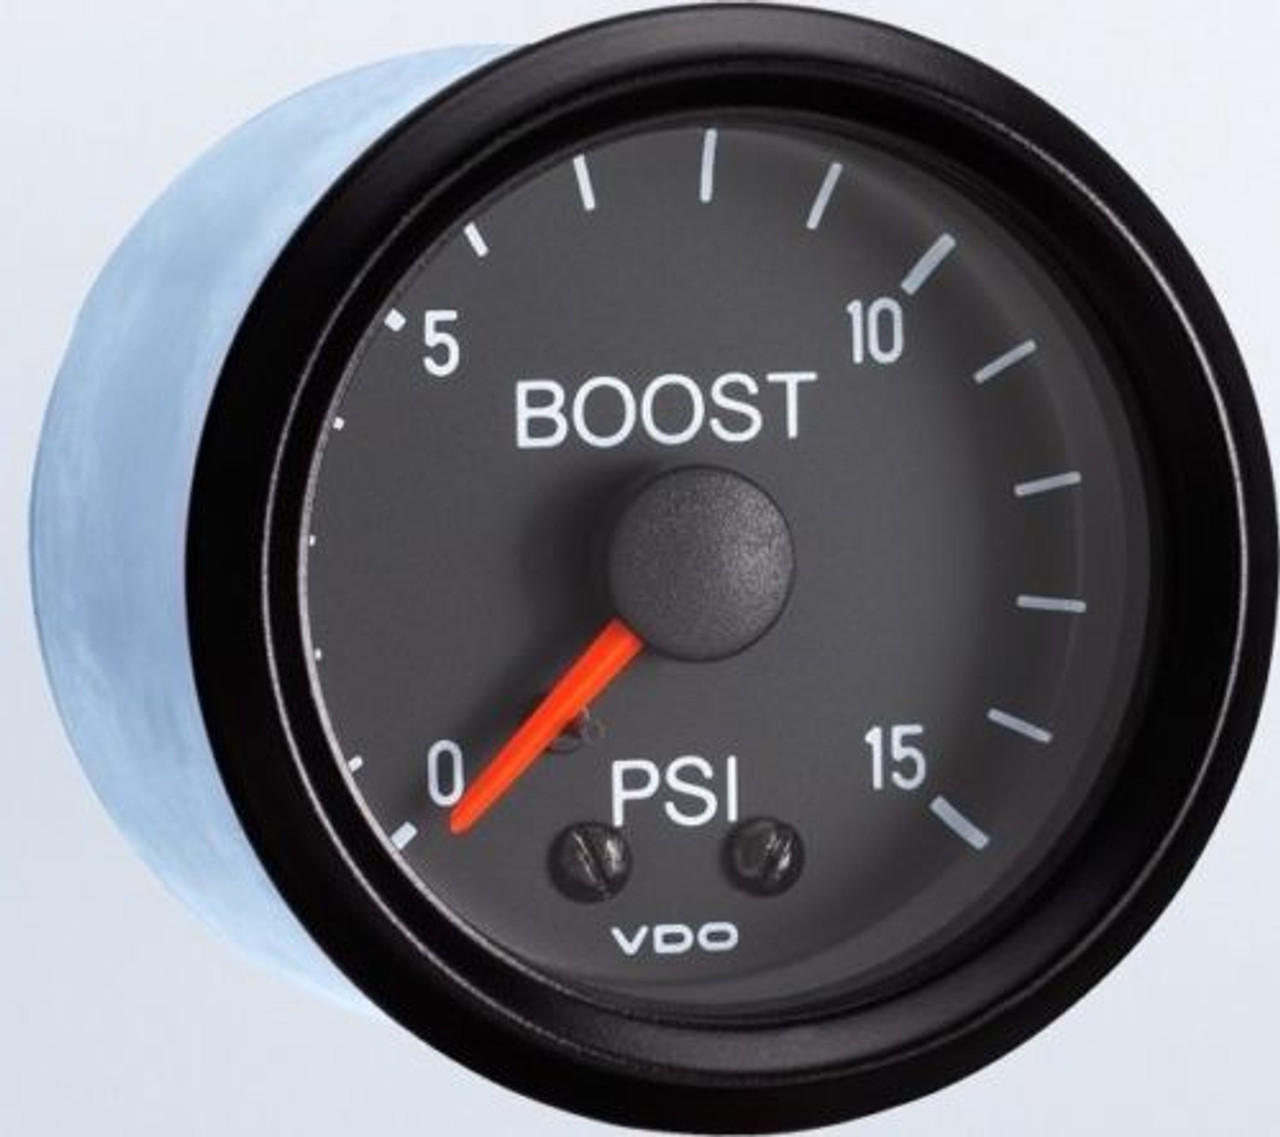 """VDO Vision Part # 150-051 Turbo Boost, 0-15 PSI, Mechanical, 1/8-27 Thread Connection, 52mm (2 1/16"""") Diameter. Traditional Halo Lighting w/ Bright Red Pointer, 12 Volt Lighted. Requires Accessory Line Kit."""